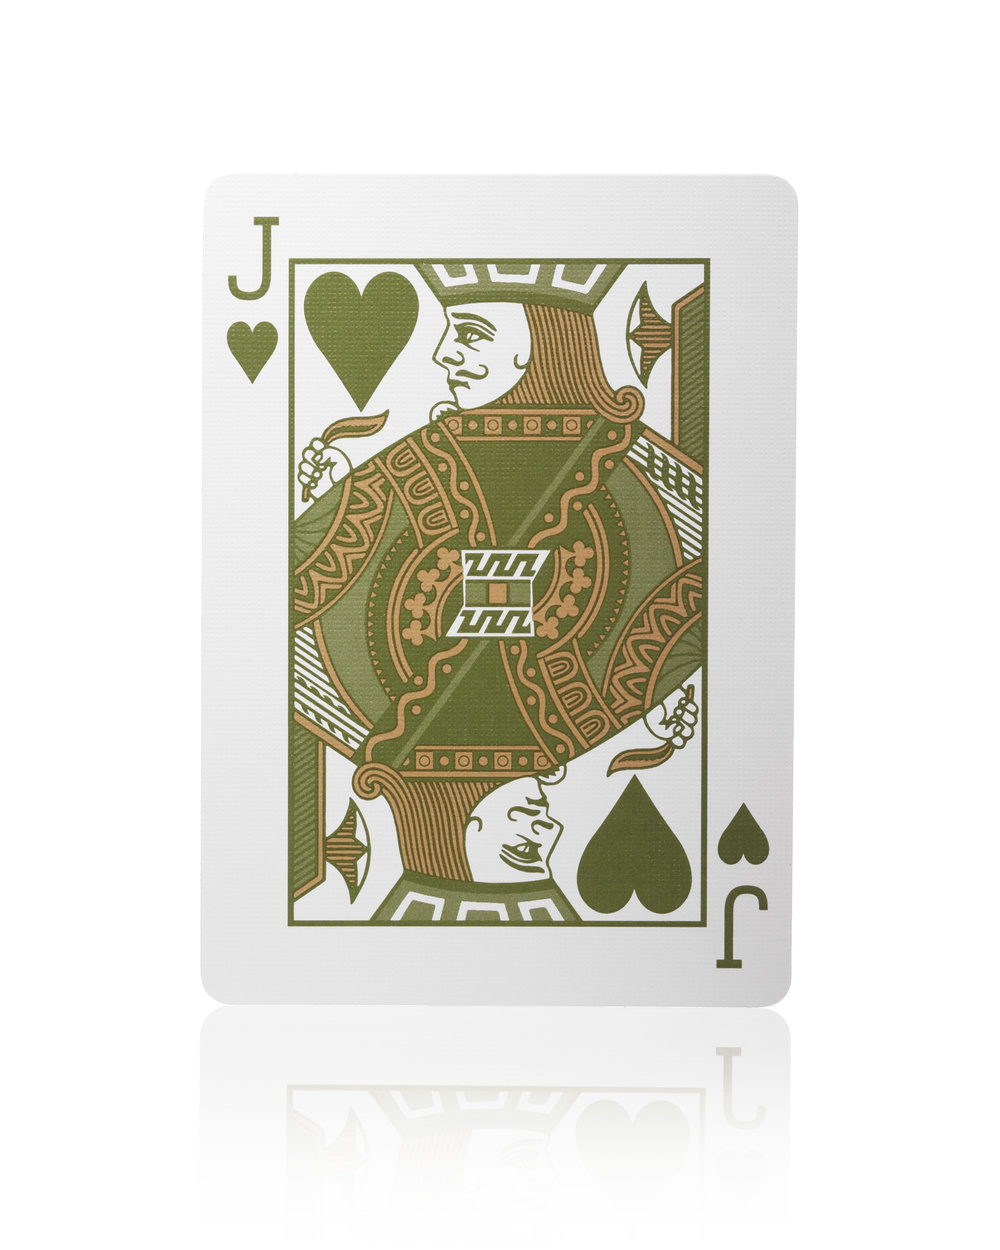 110330-PlayingCards-PlayingCards-013 copy.jpg